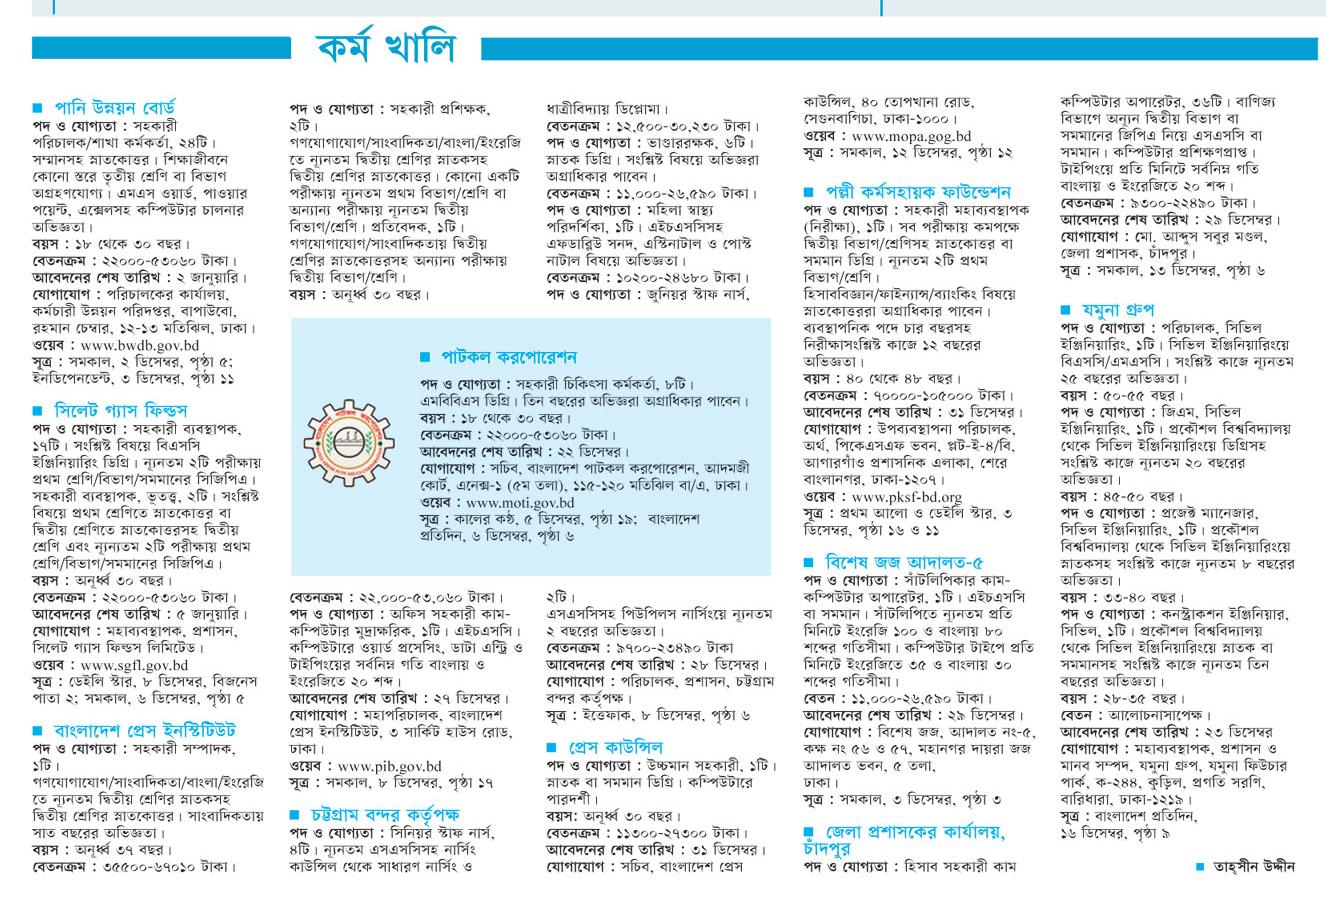 Latest Job Circular In Decemmber